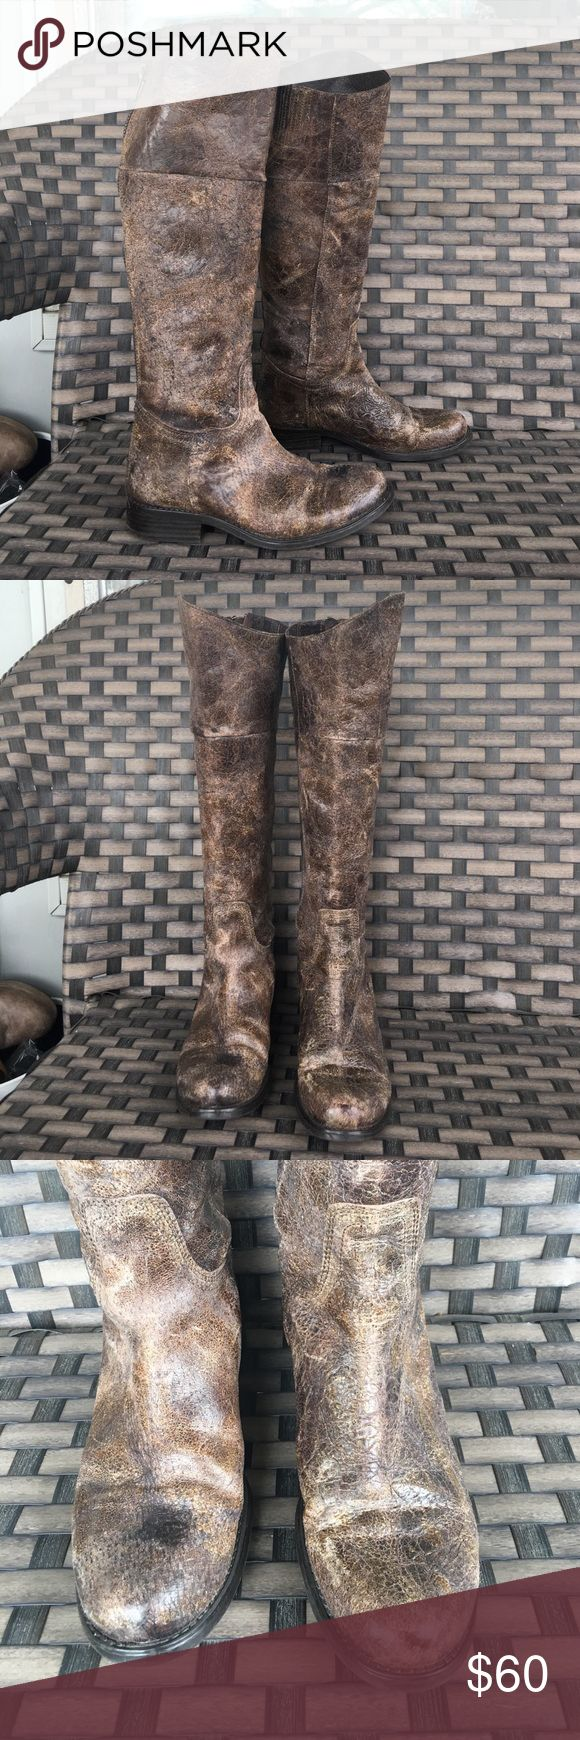 """Steve Madden rover distressed leather riding boot 8 very good preowned condition see pic awesome boots similar to freebird but are Steve Madden brand. Calf 14.5"""" shaft 16.5"""" Steve Madden Shoes Heeled Boots"""